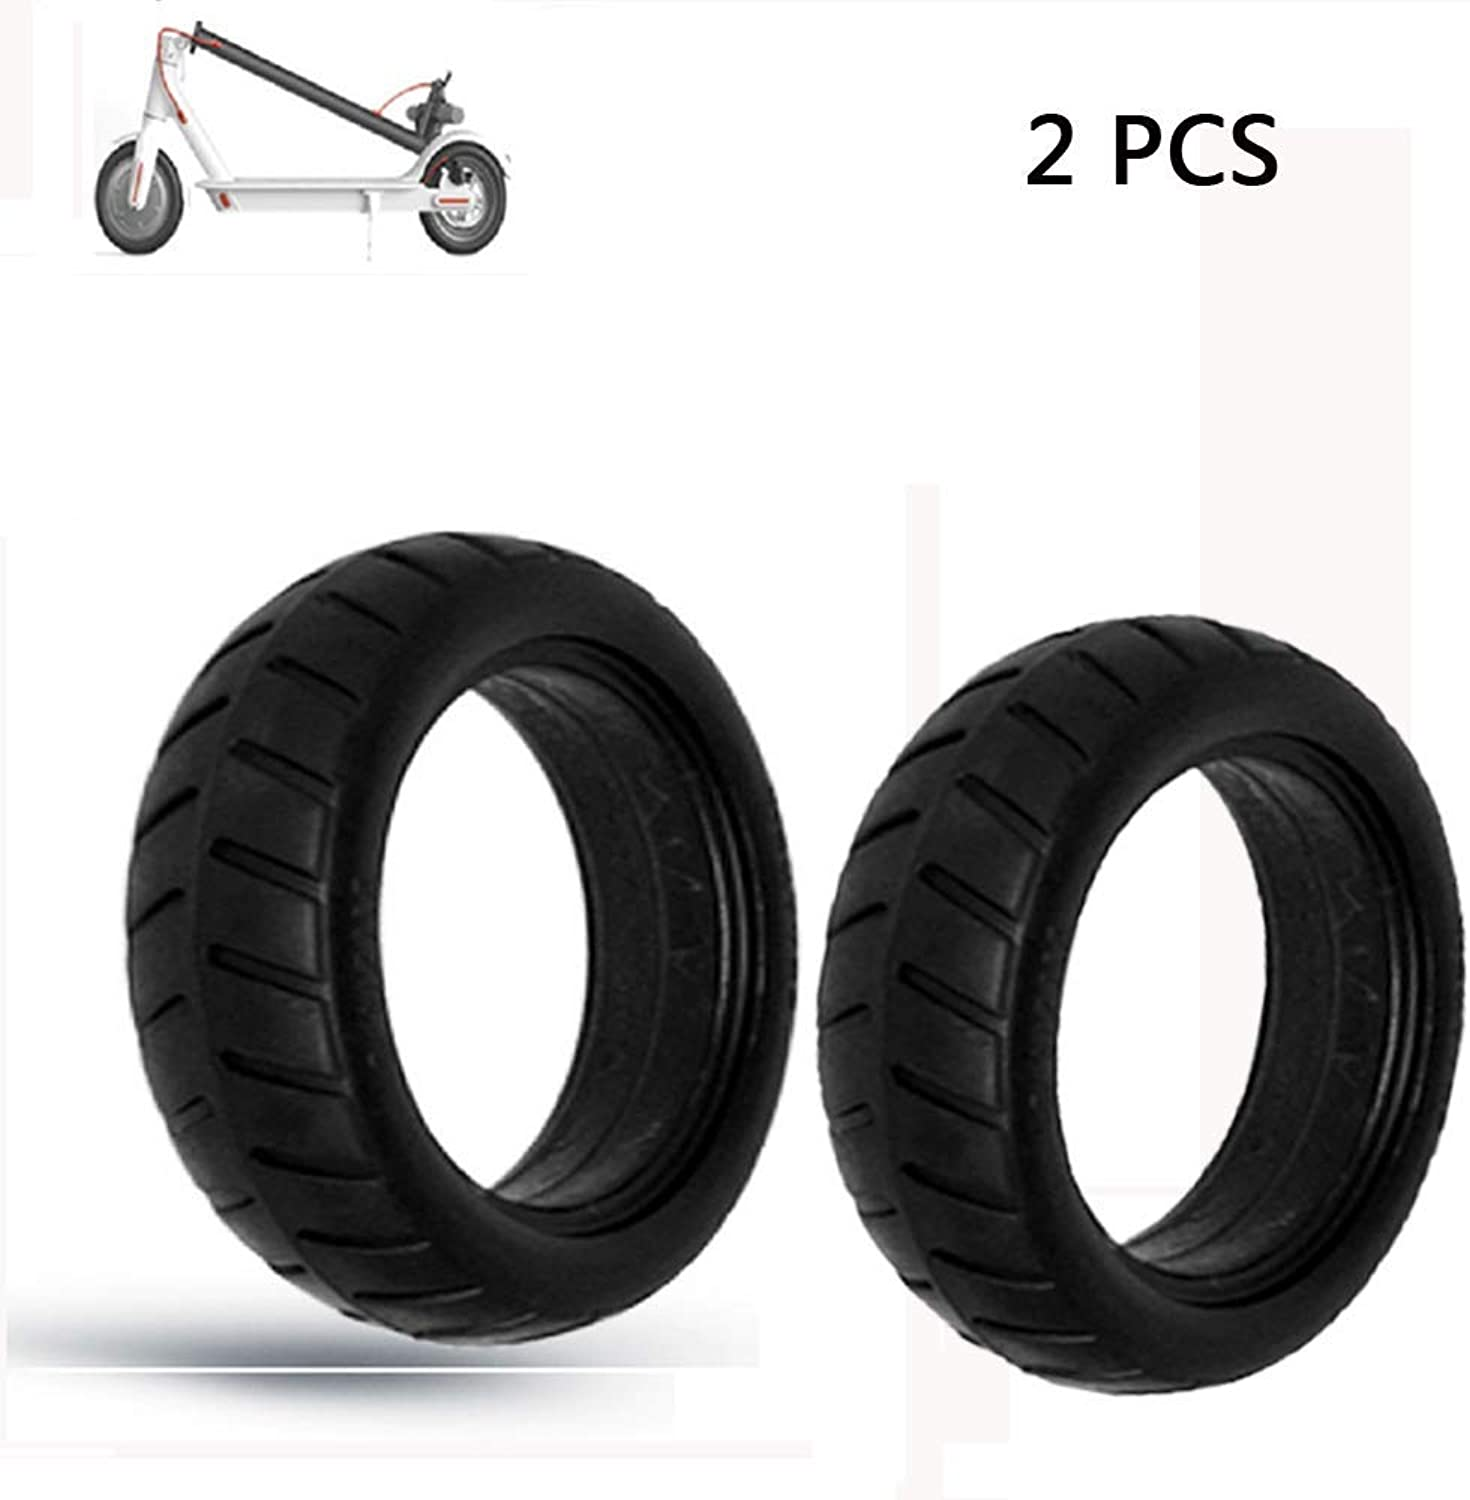 Yifant 8 1 2x 2 Pack of 2pcs Solid Tires for Xiaomi M365 Electric Scooter Replacement Wheels Outer Tubes